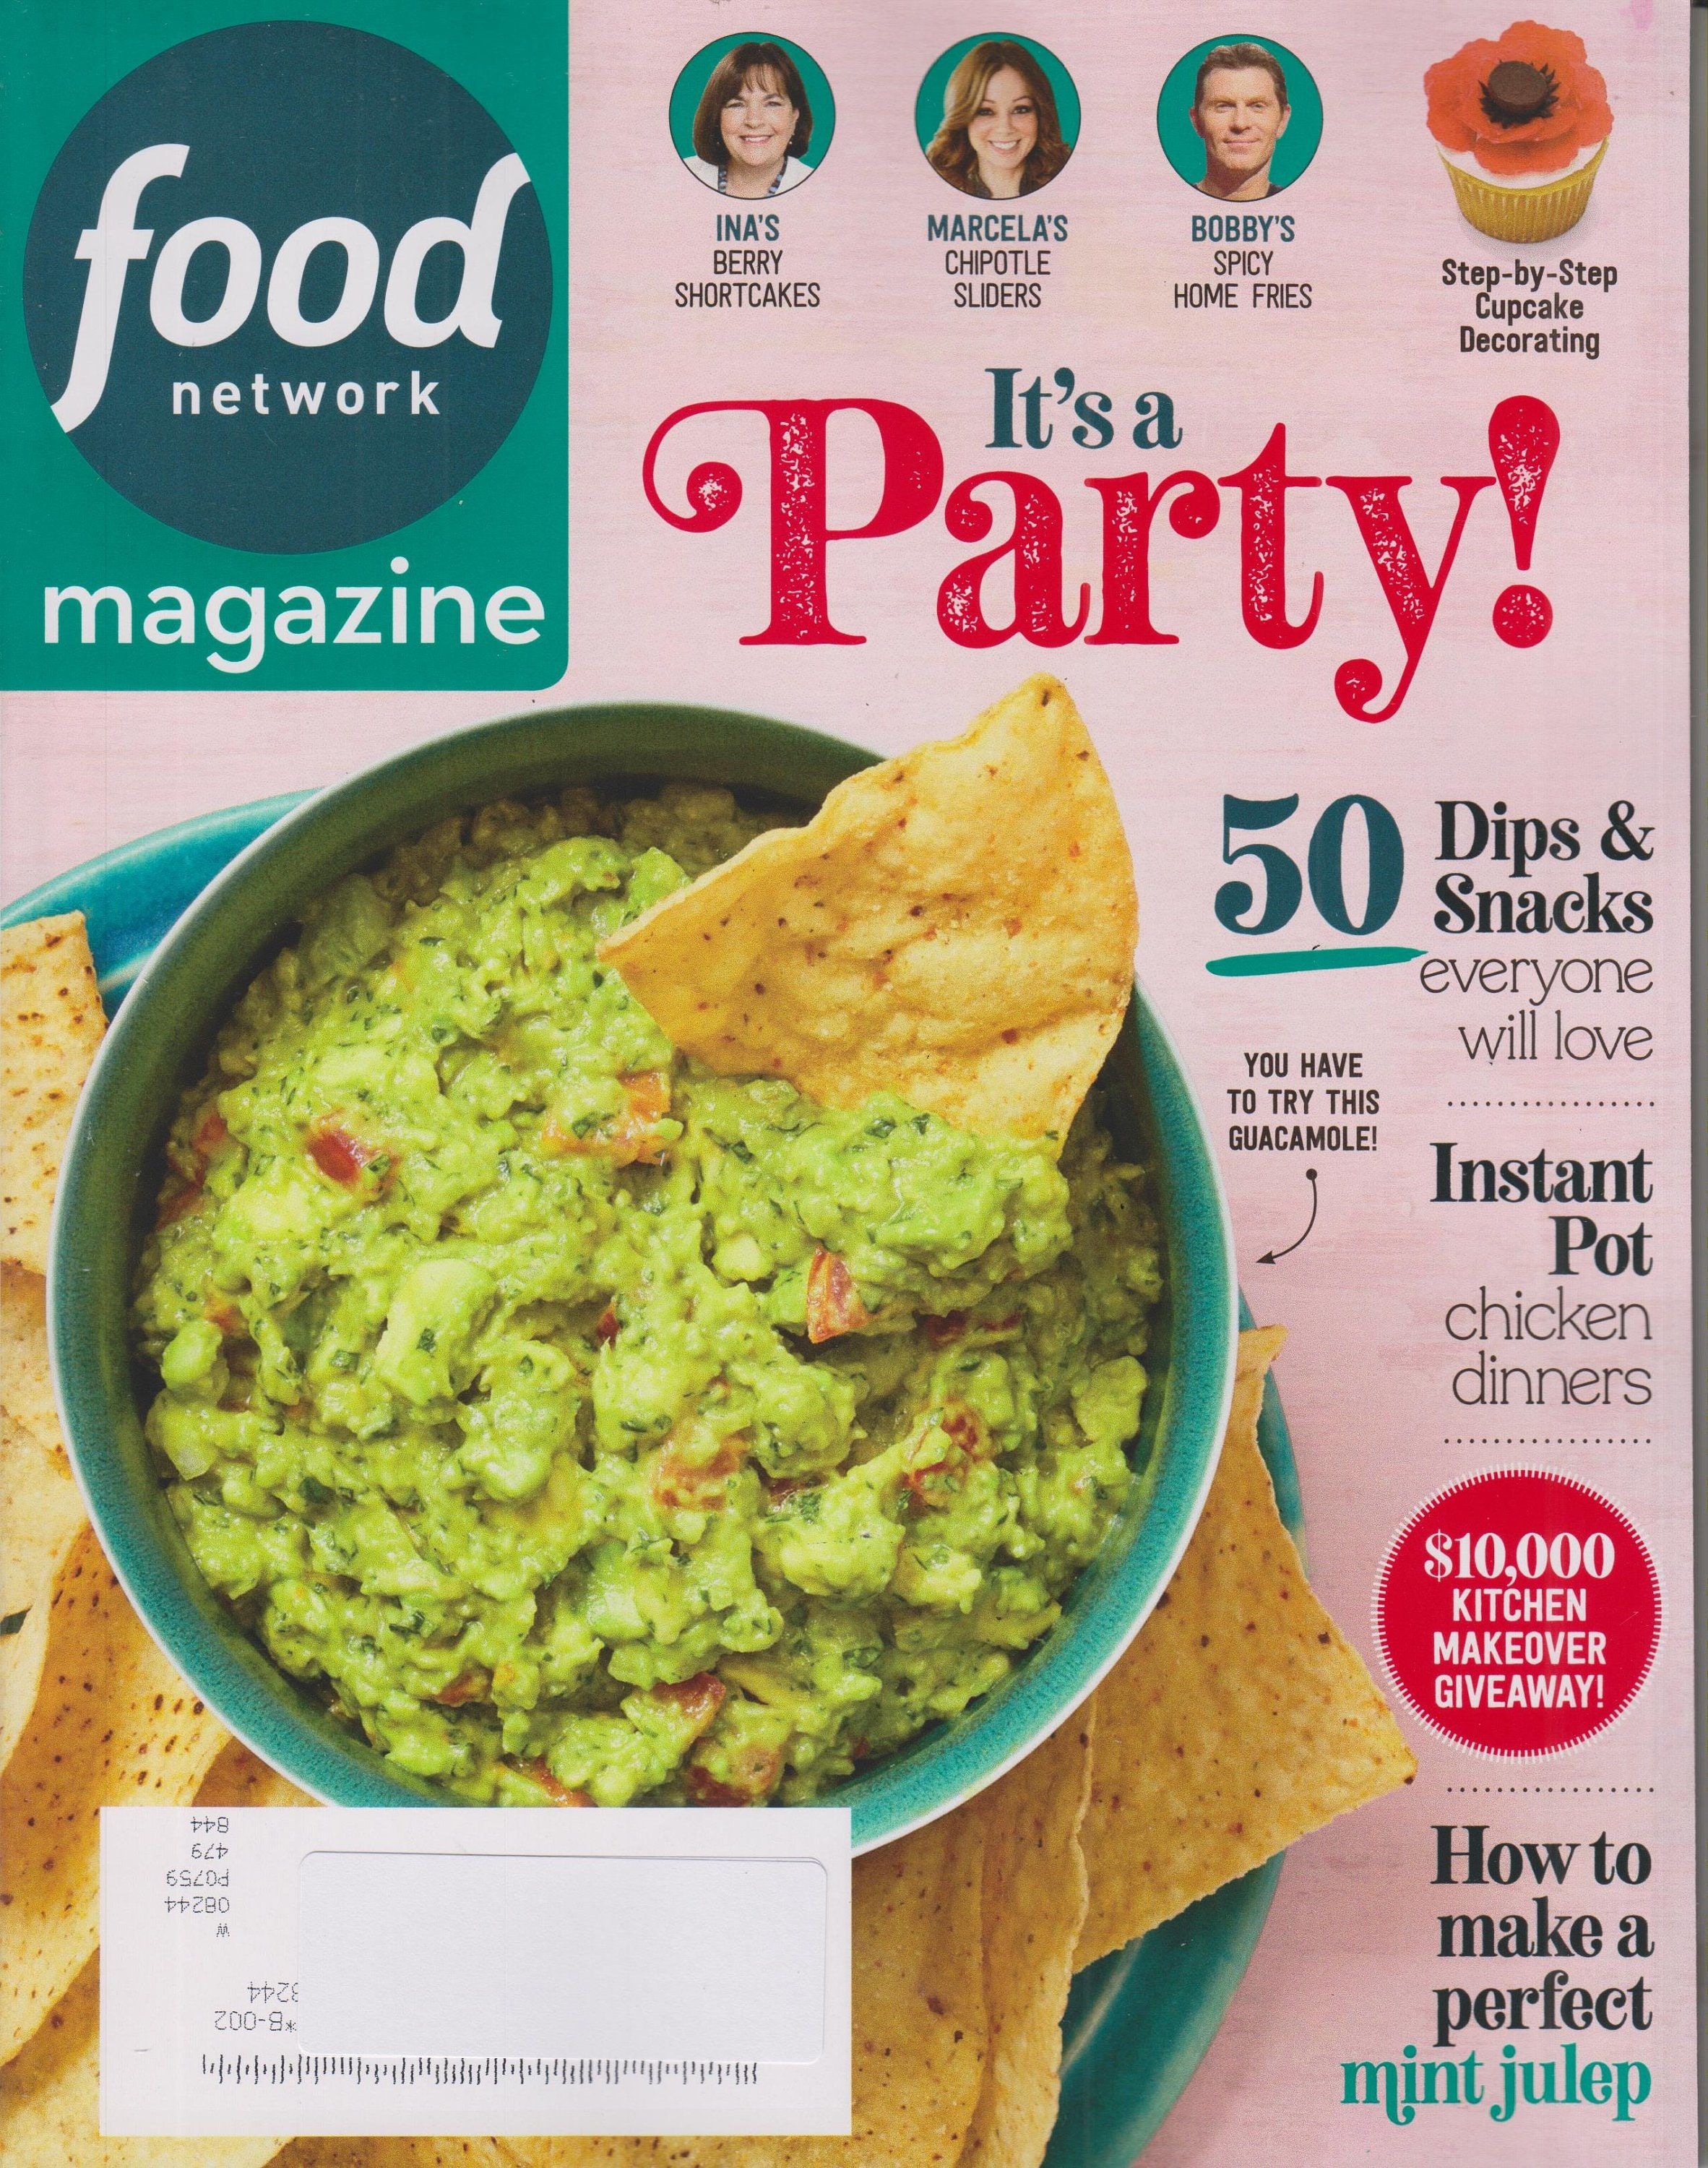 Food Network May 2019 It's A Party! 50 Dips & Snacks Everyone Will